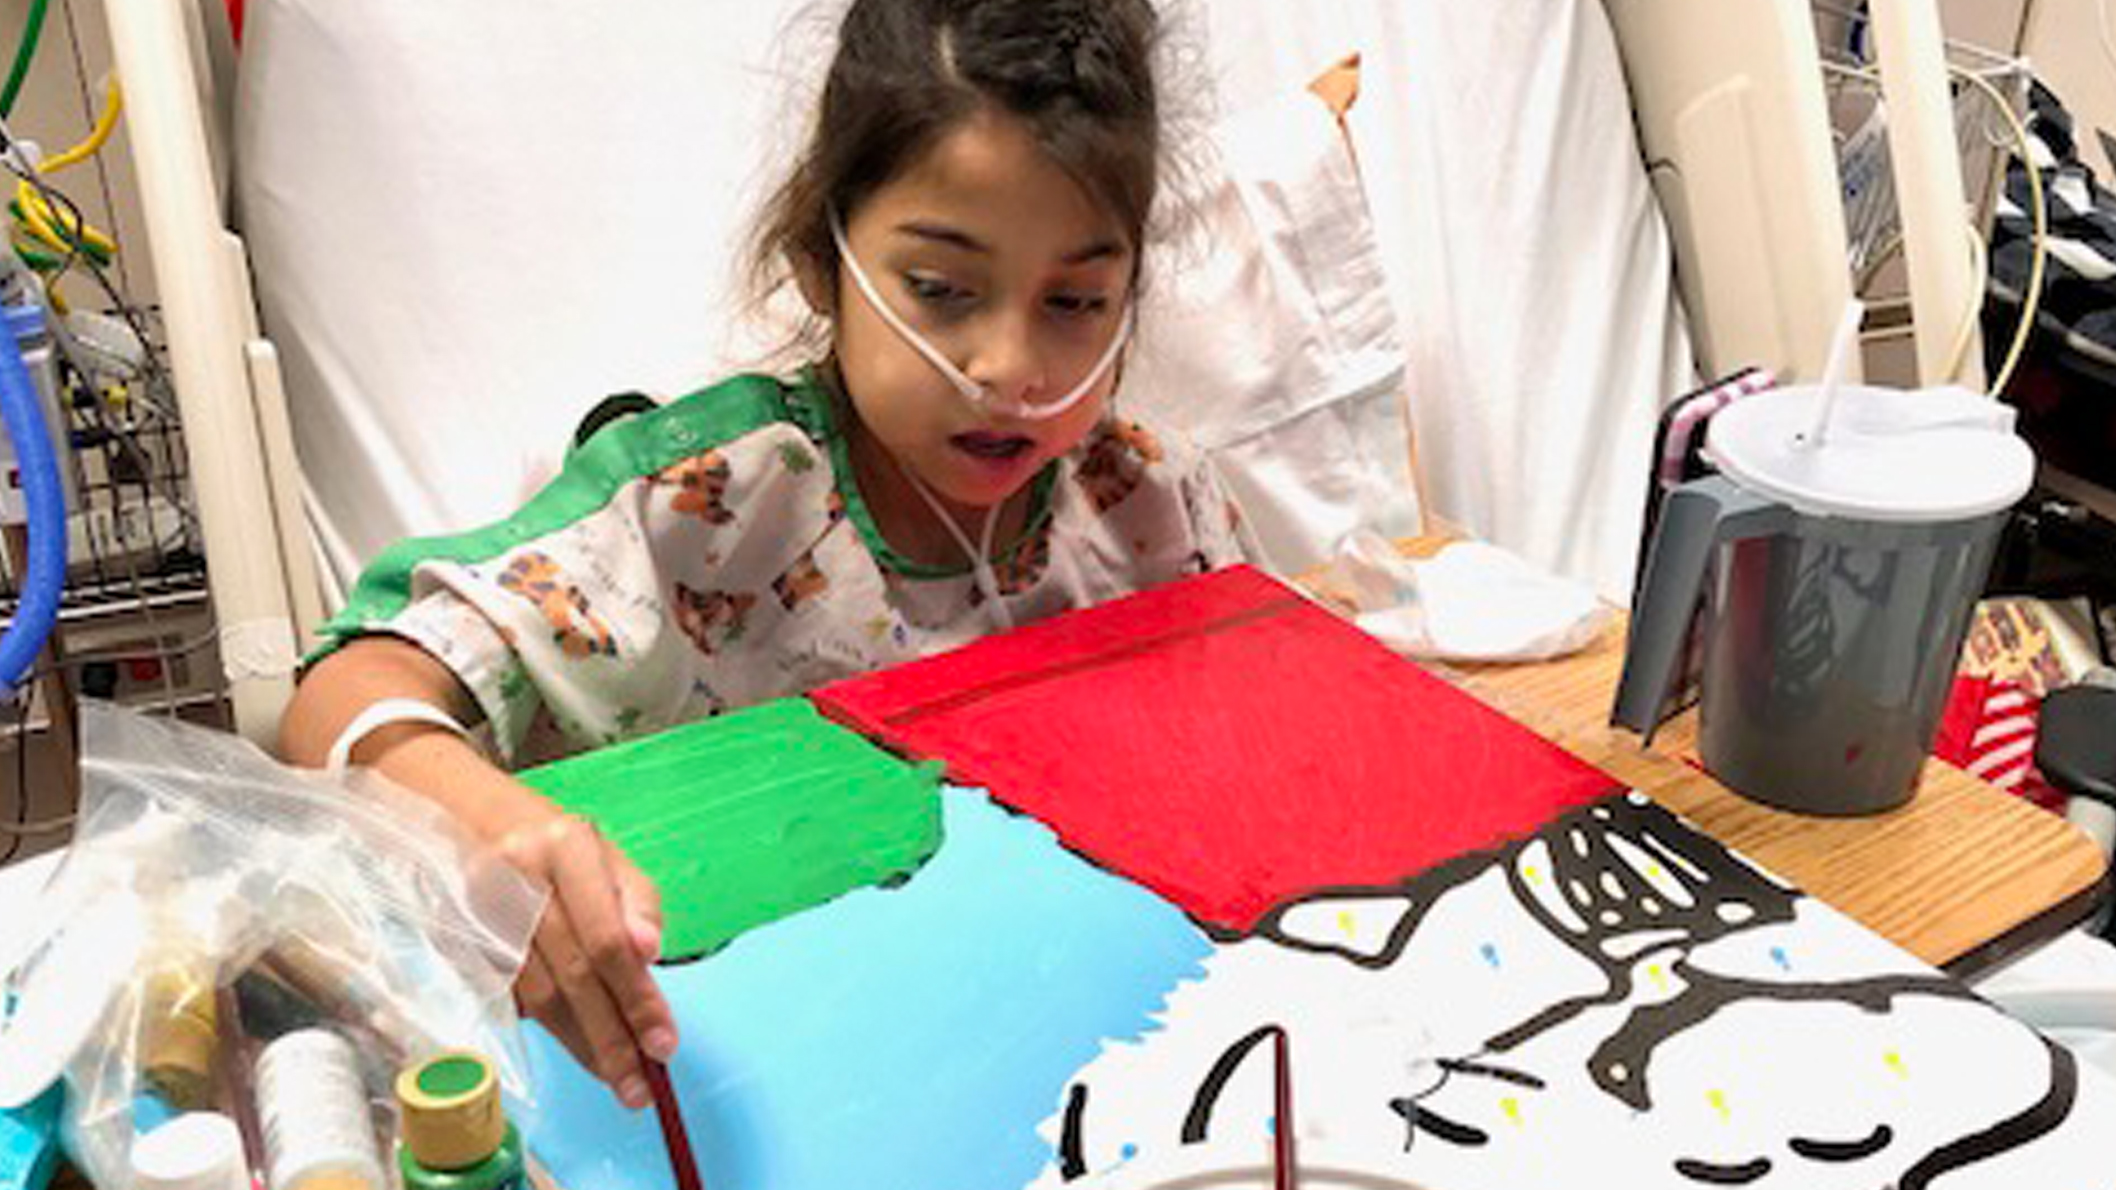 A little girl paints part of a mural at a hospital in California